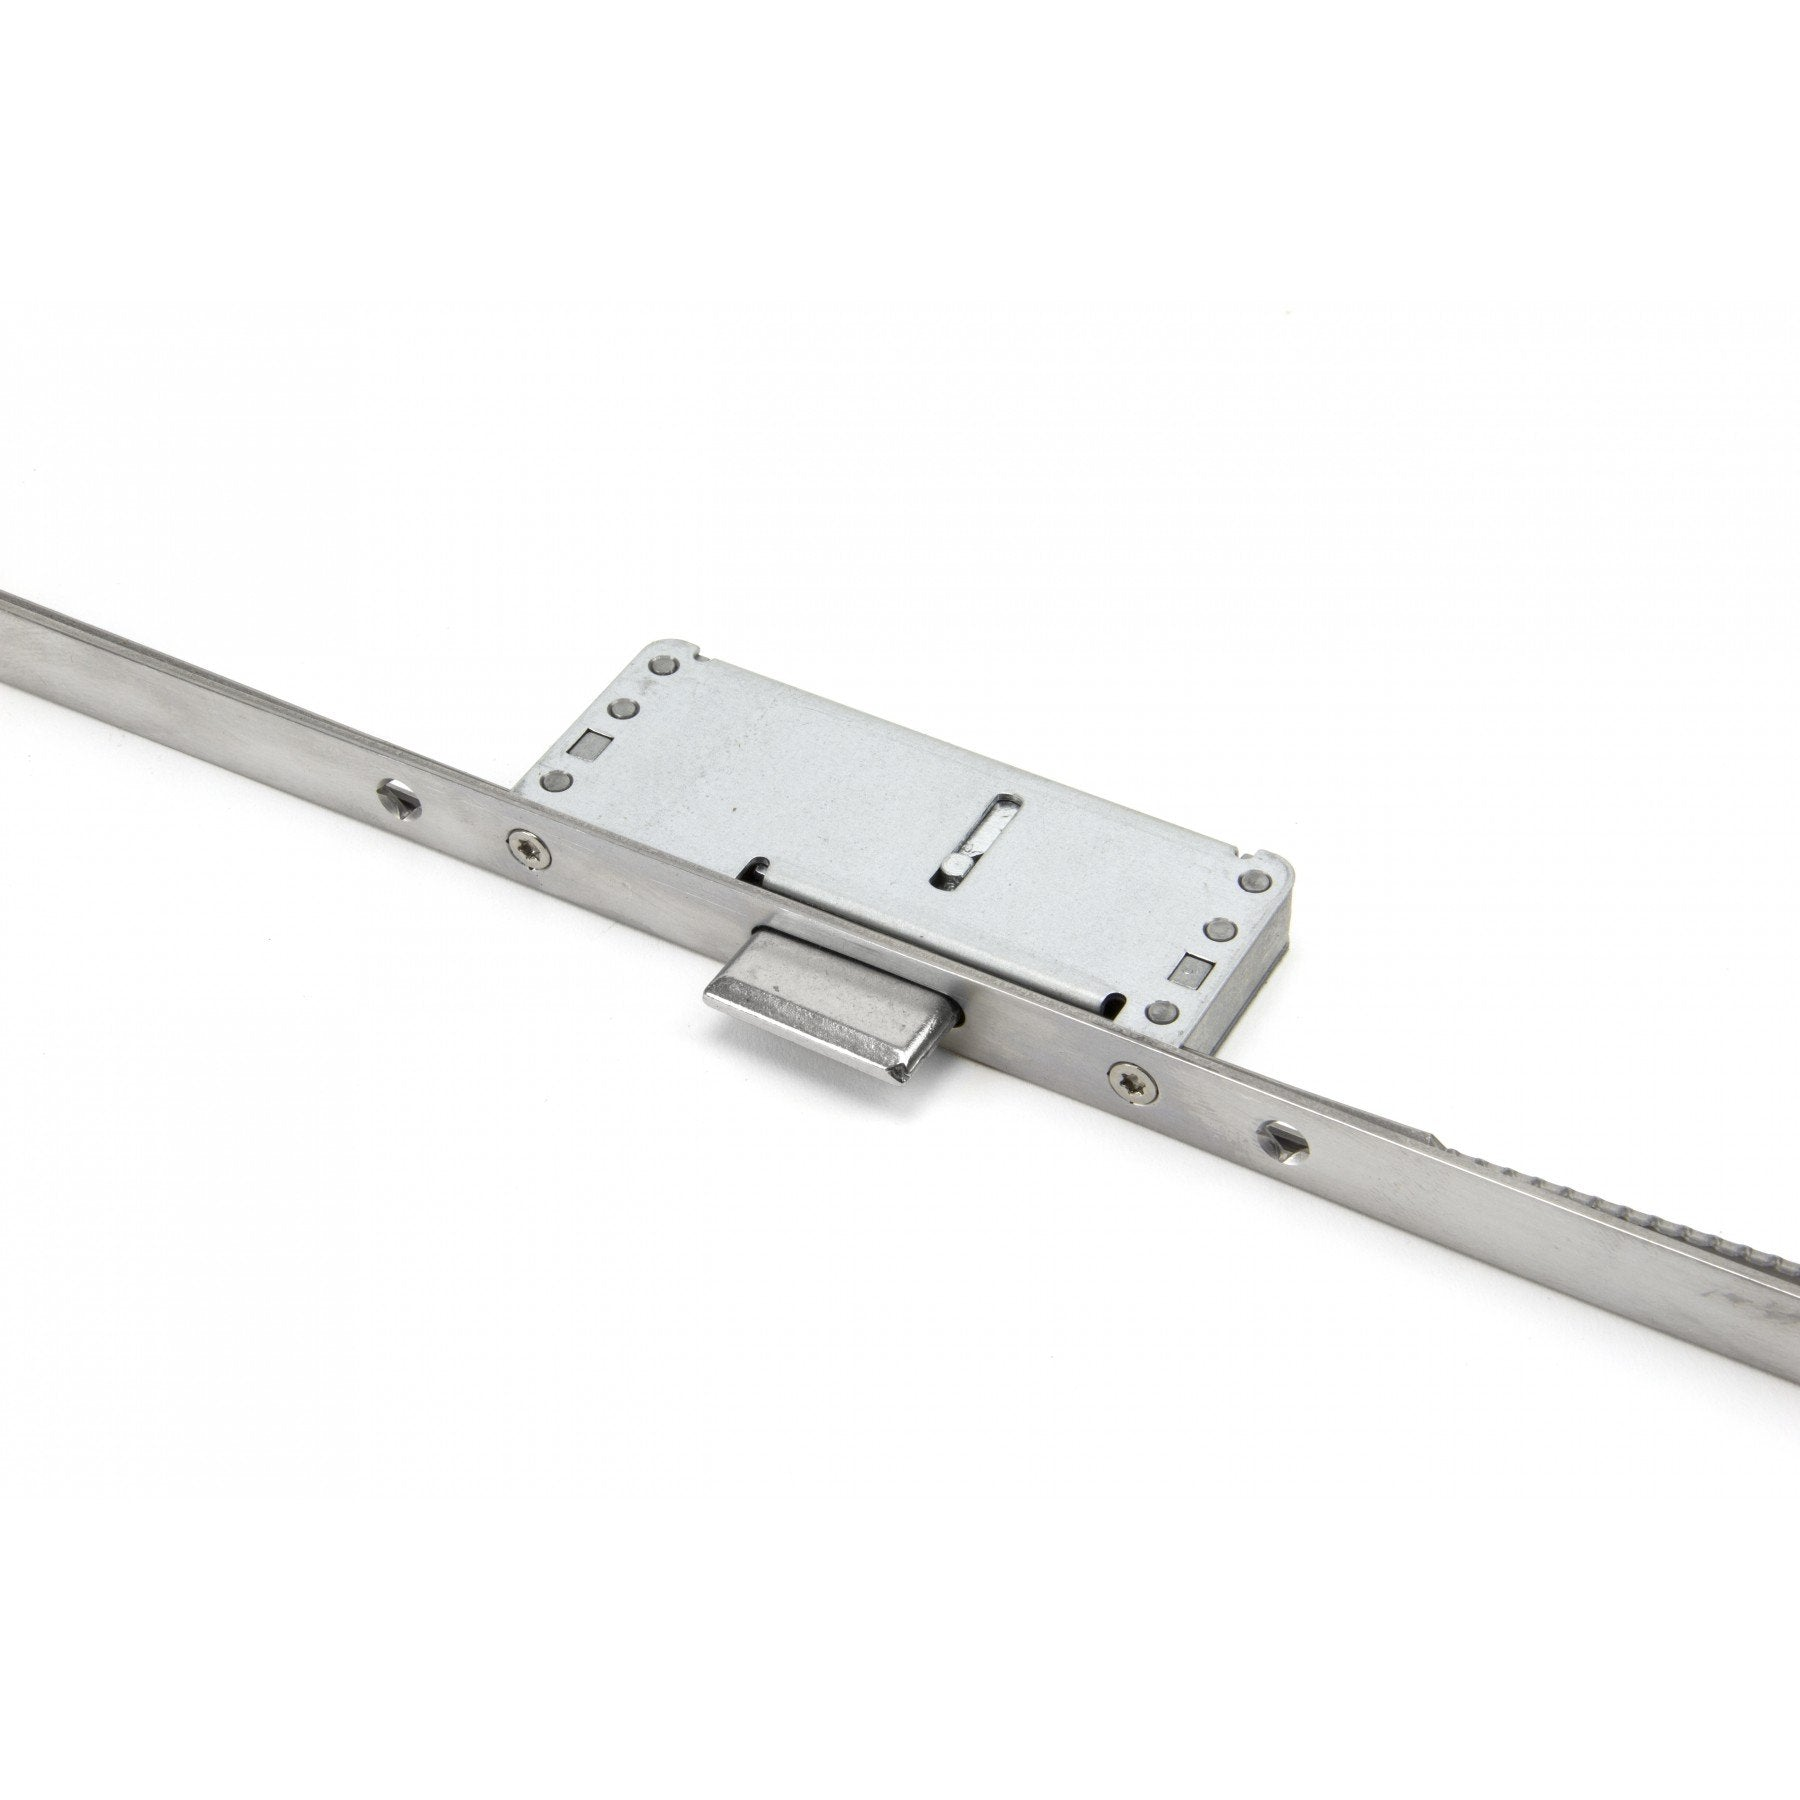 From the Anvil SS 45mm Backset linear 3 Point Door Lock